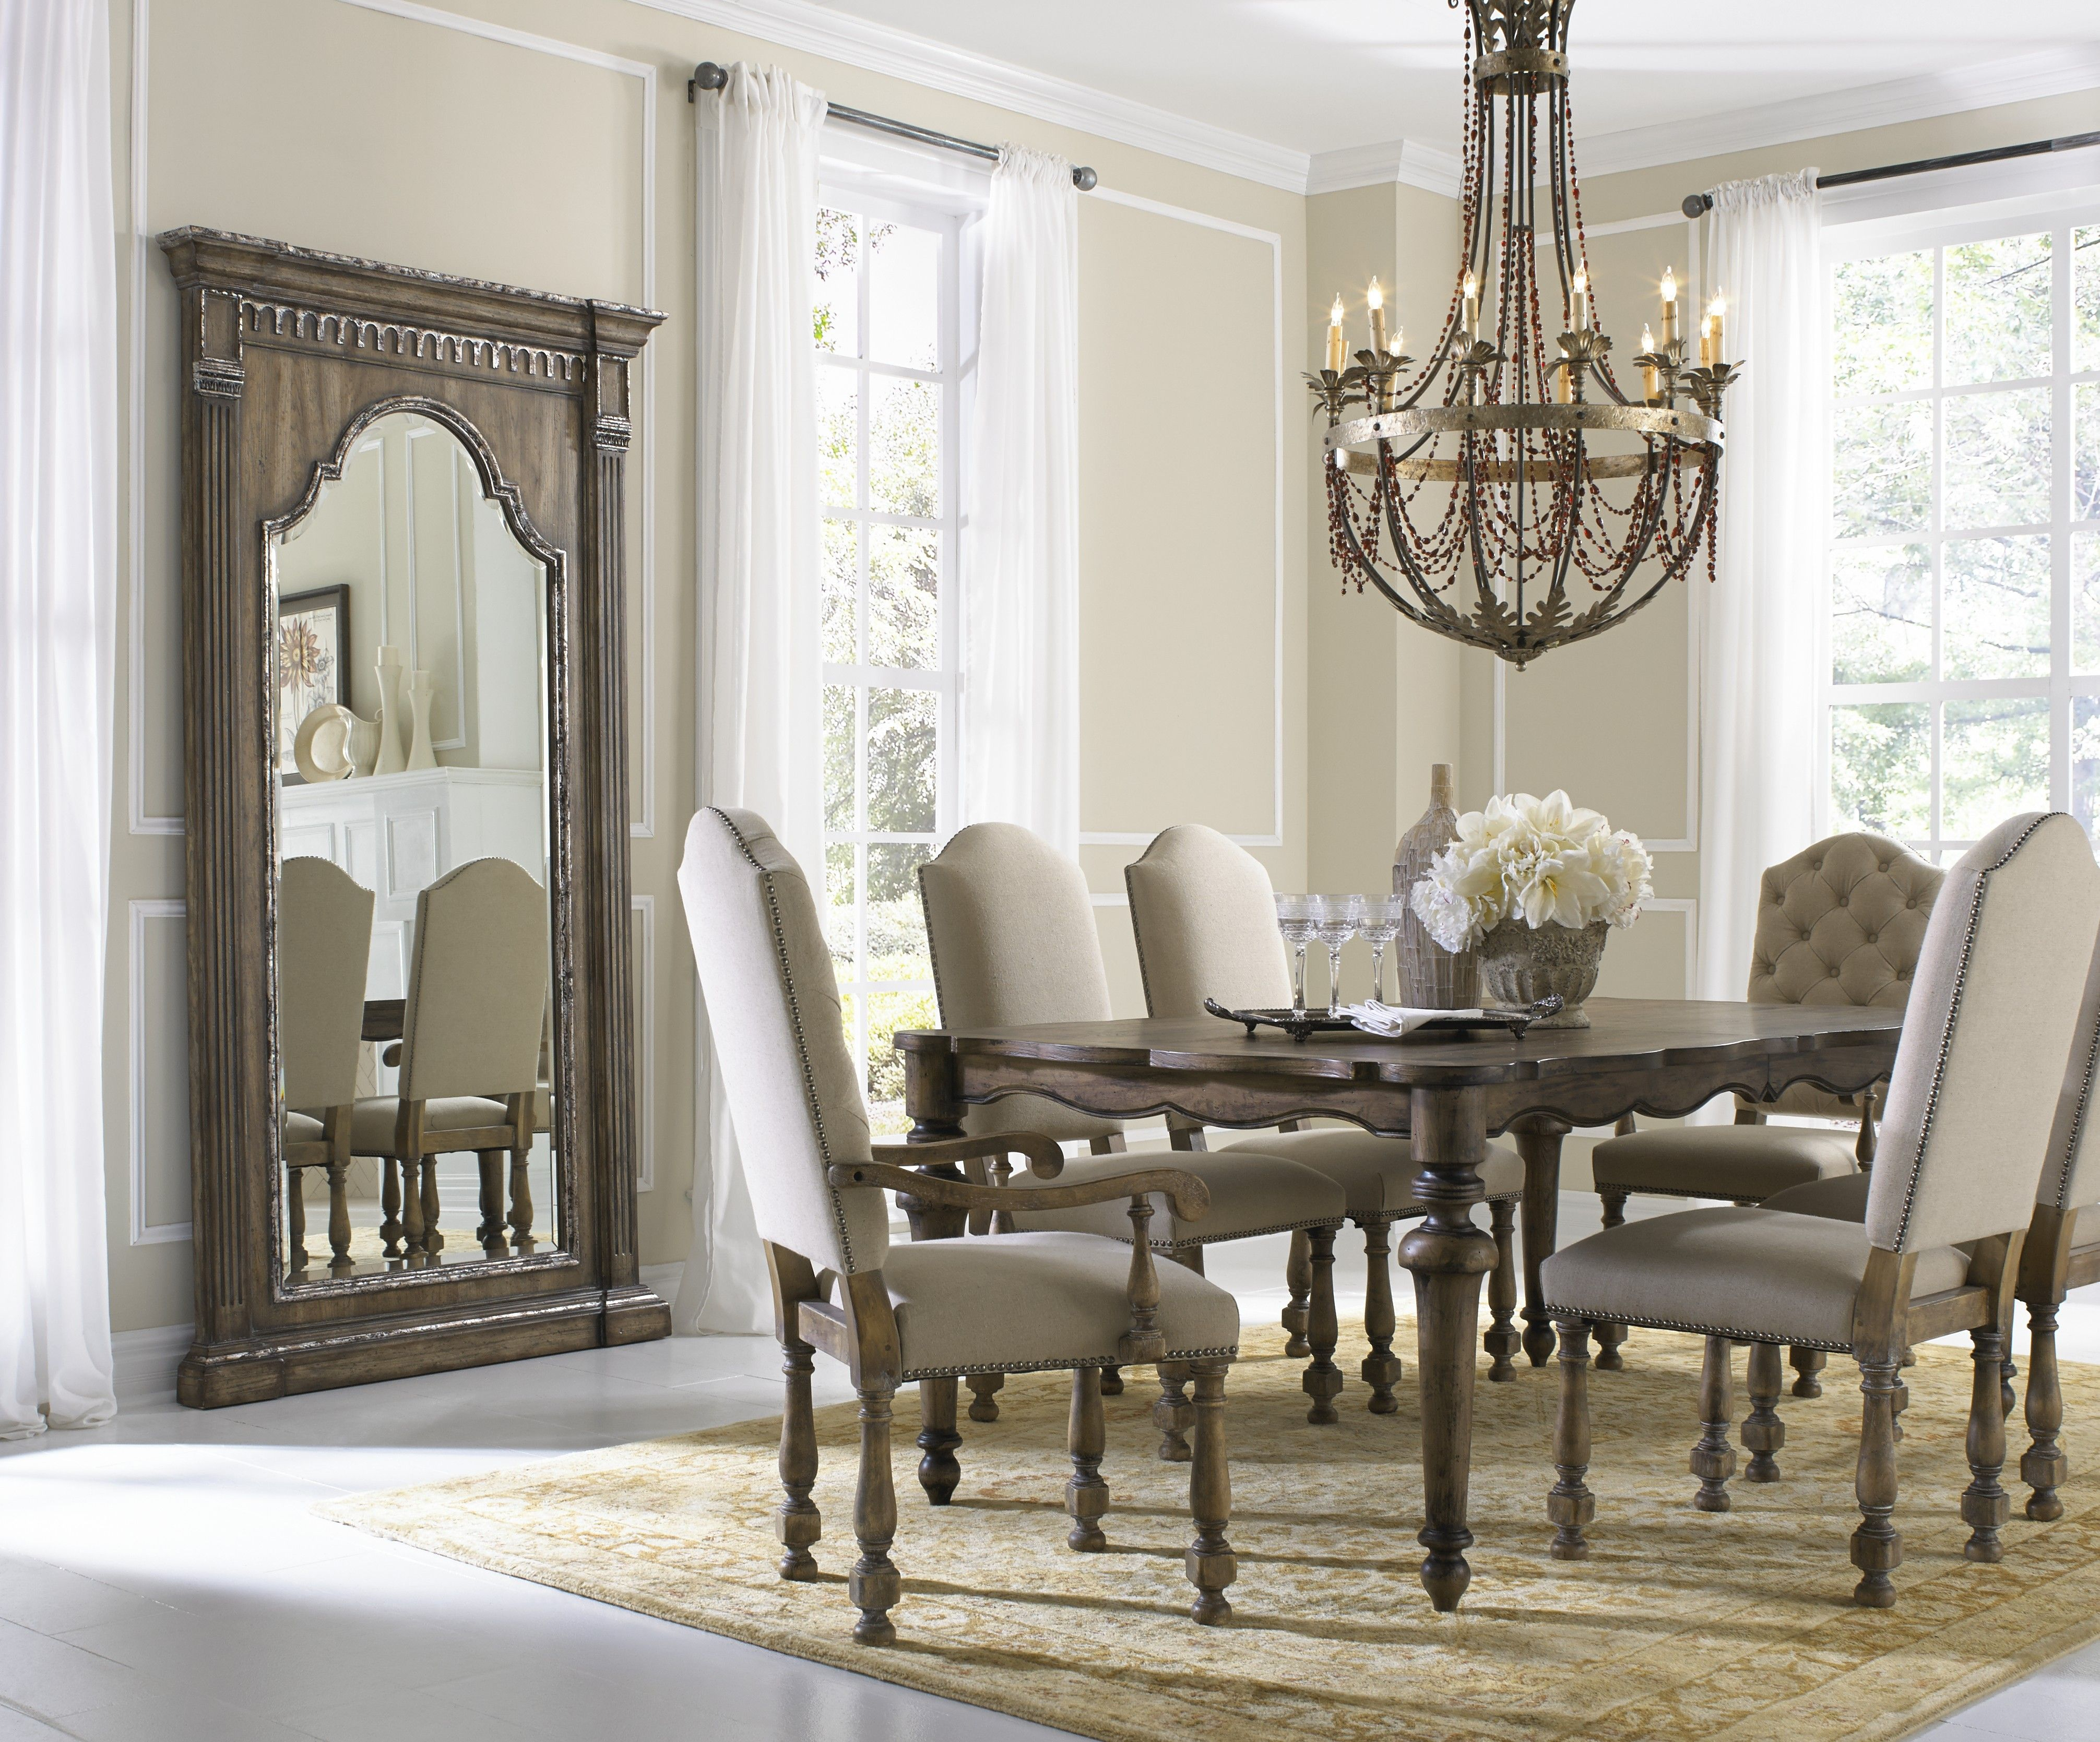 Rustic wood and off-white chairs give an elegant and homey ...